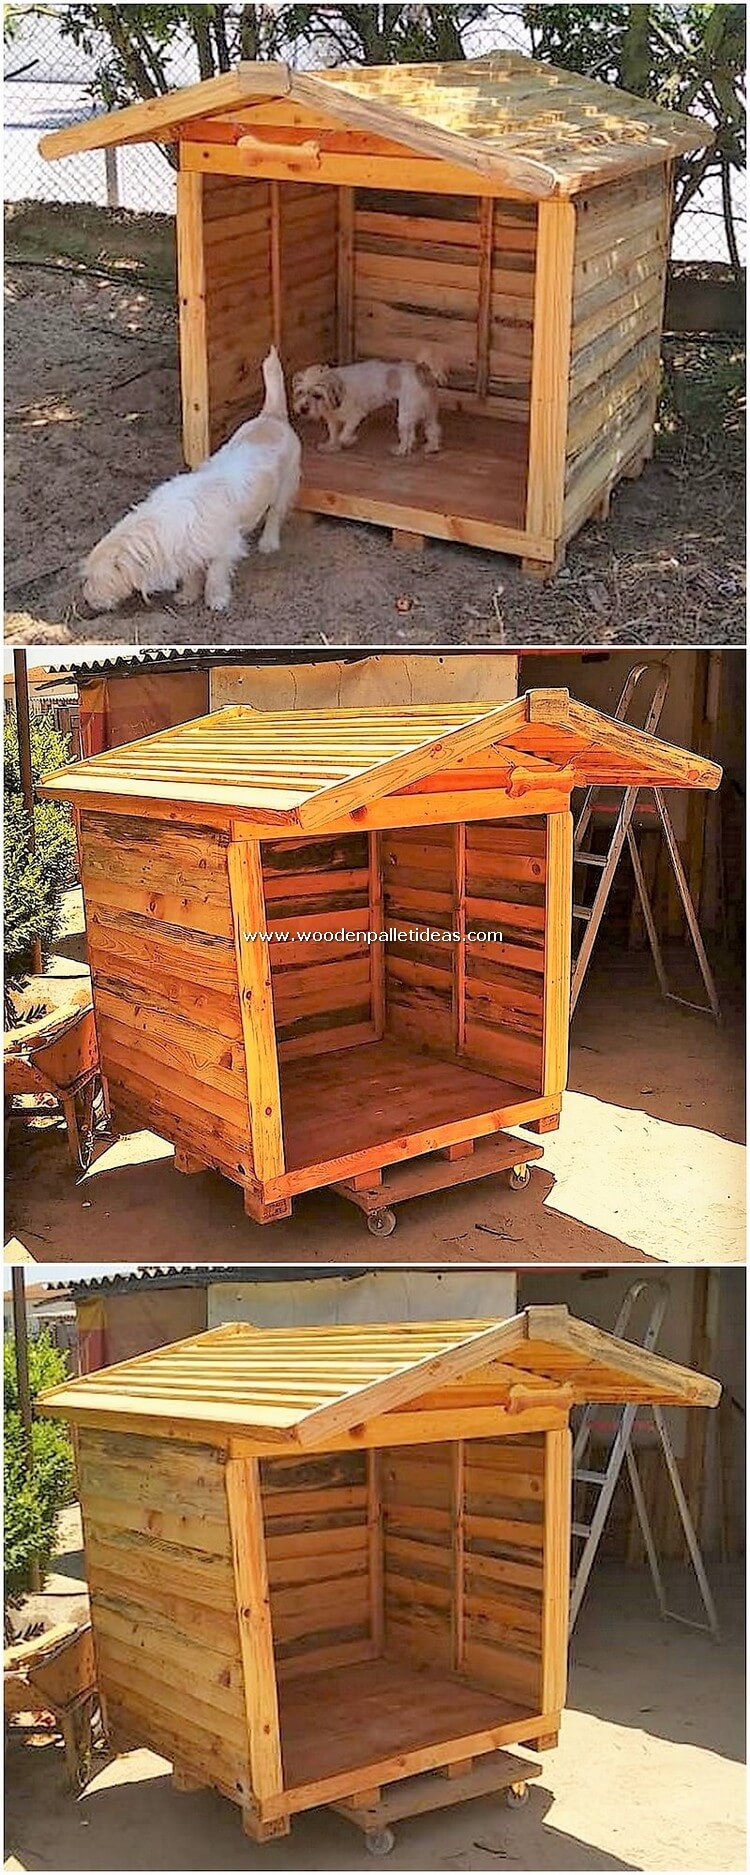 Wooden-Pallet-Pet-House